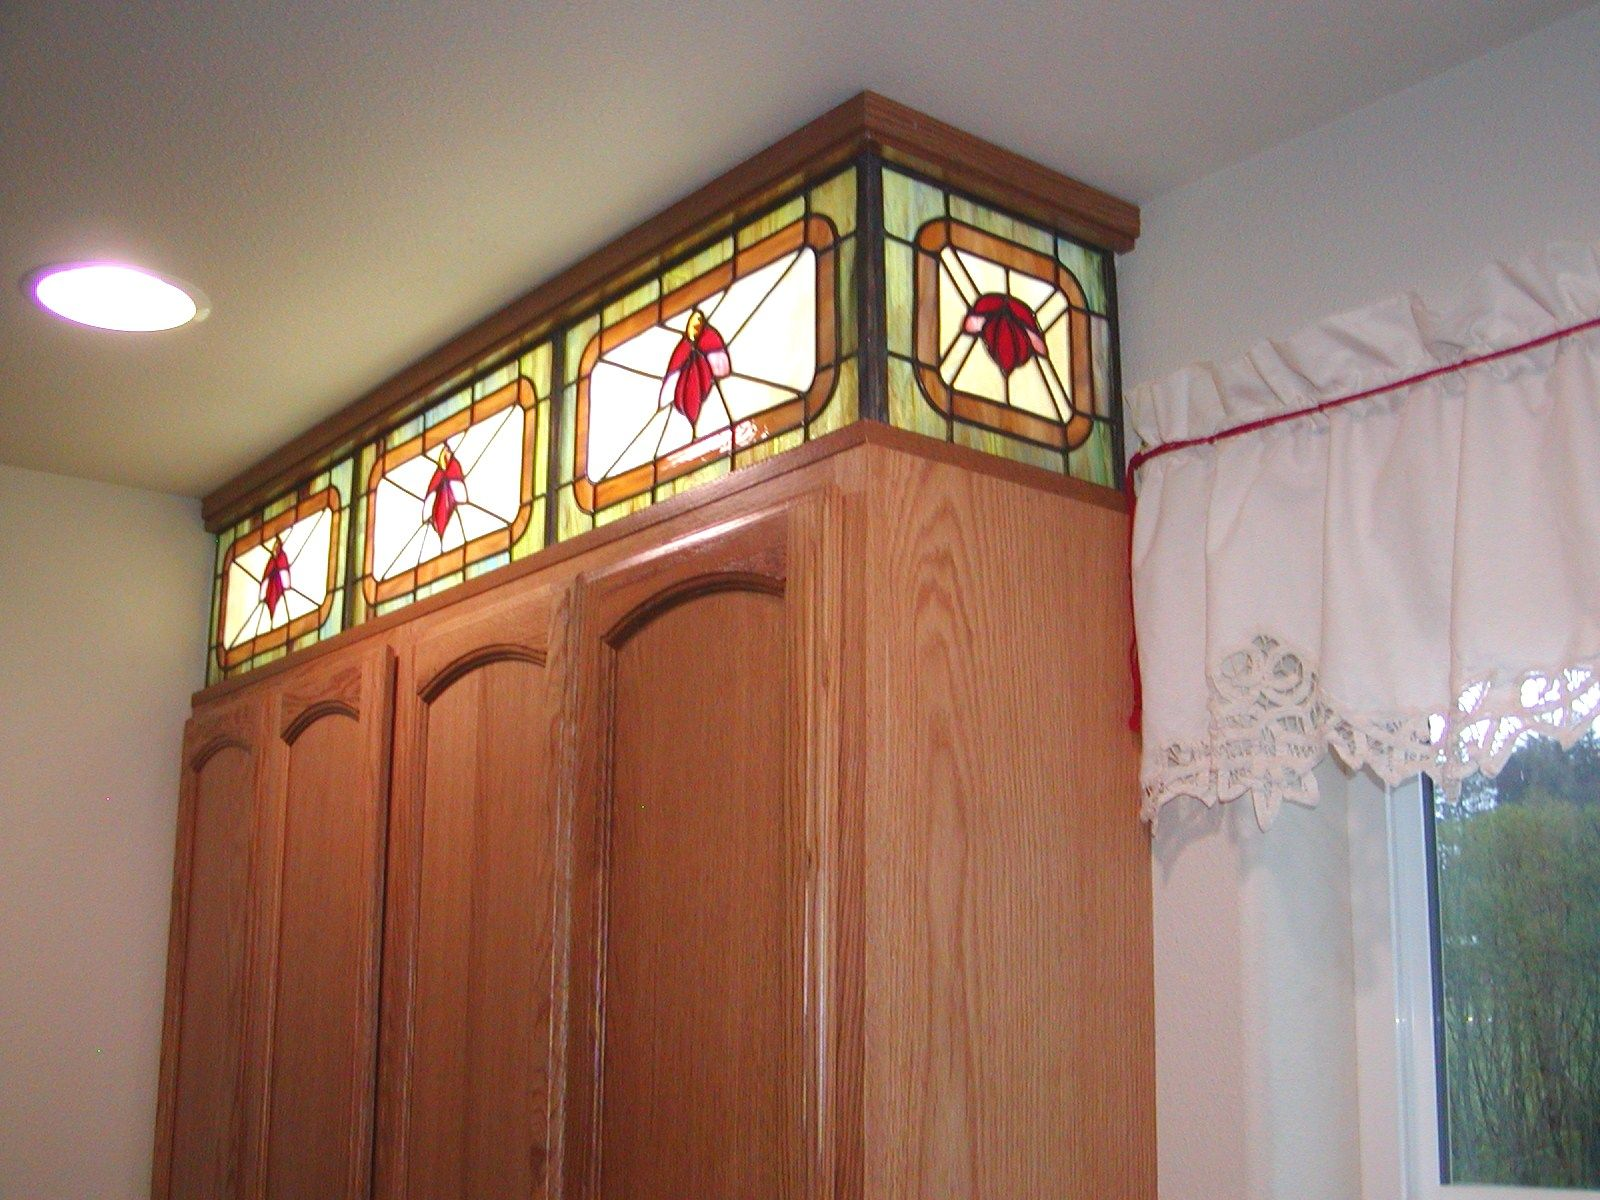 Stained Glass Above Kitchen Cabinet Panel This View Shows One Of The End Panels With Images Stained Glass Stained Glass Panels Stained Glass Projects